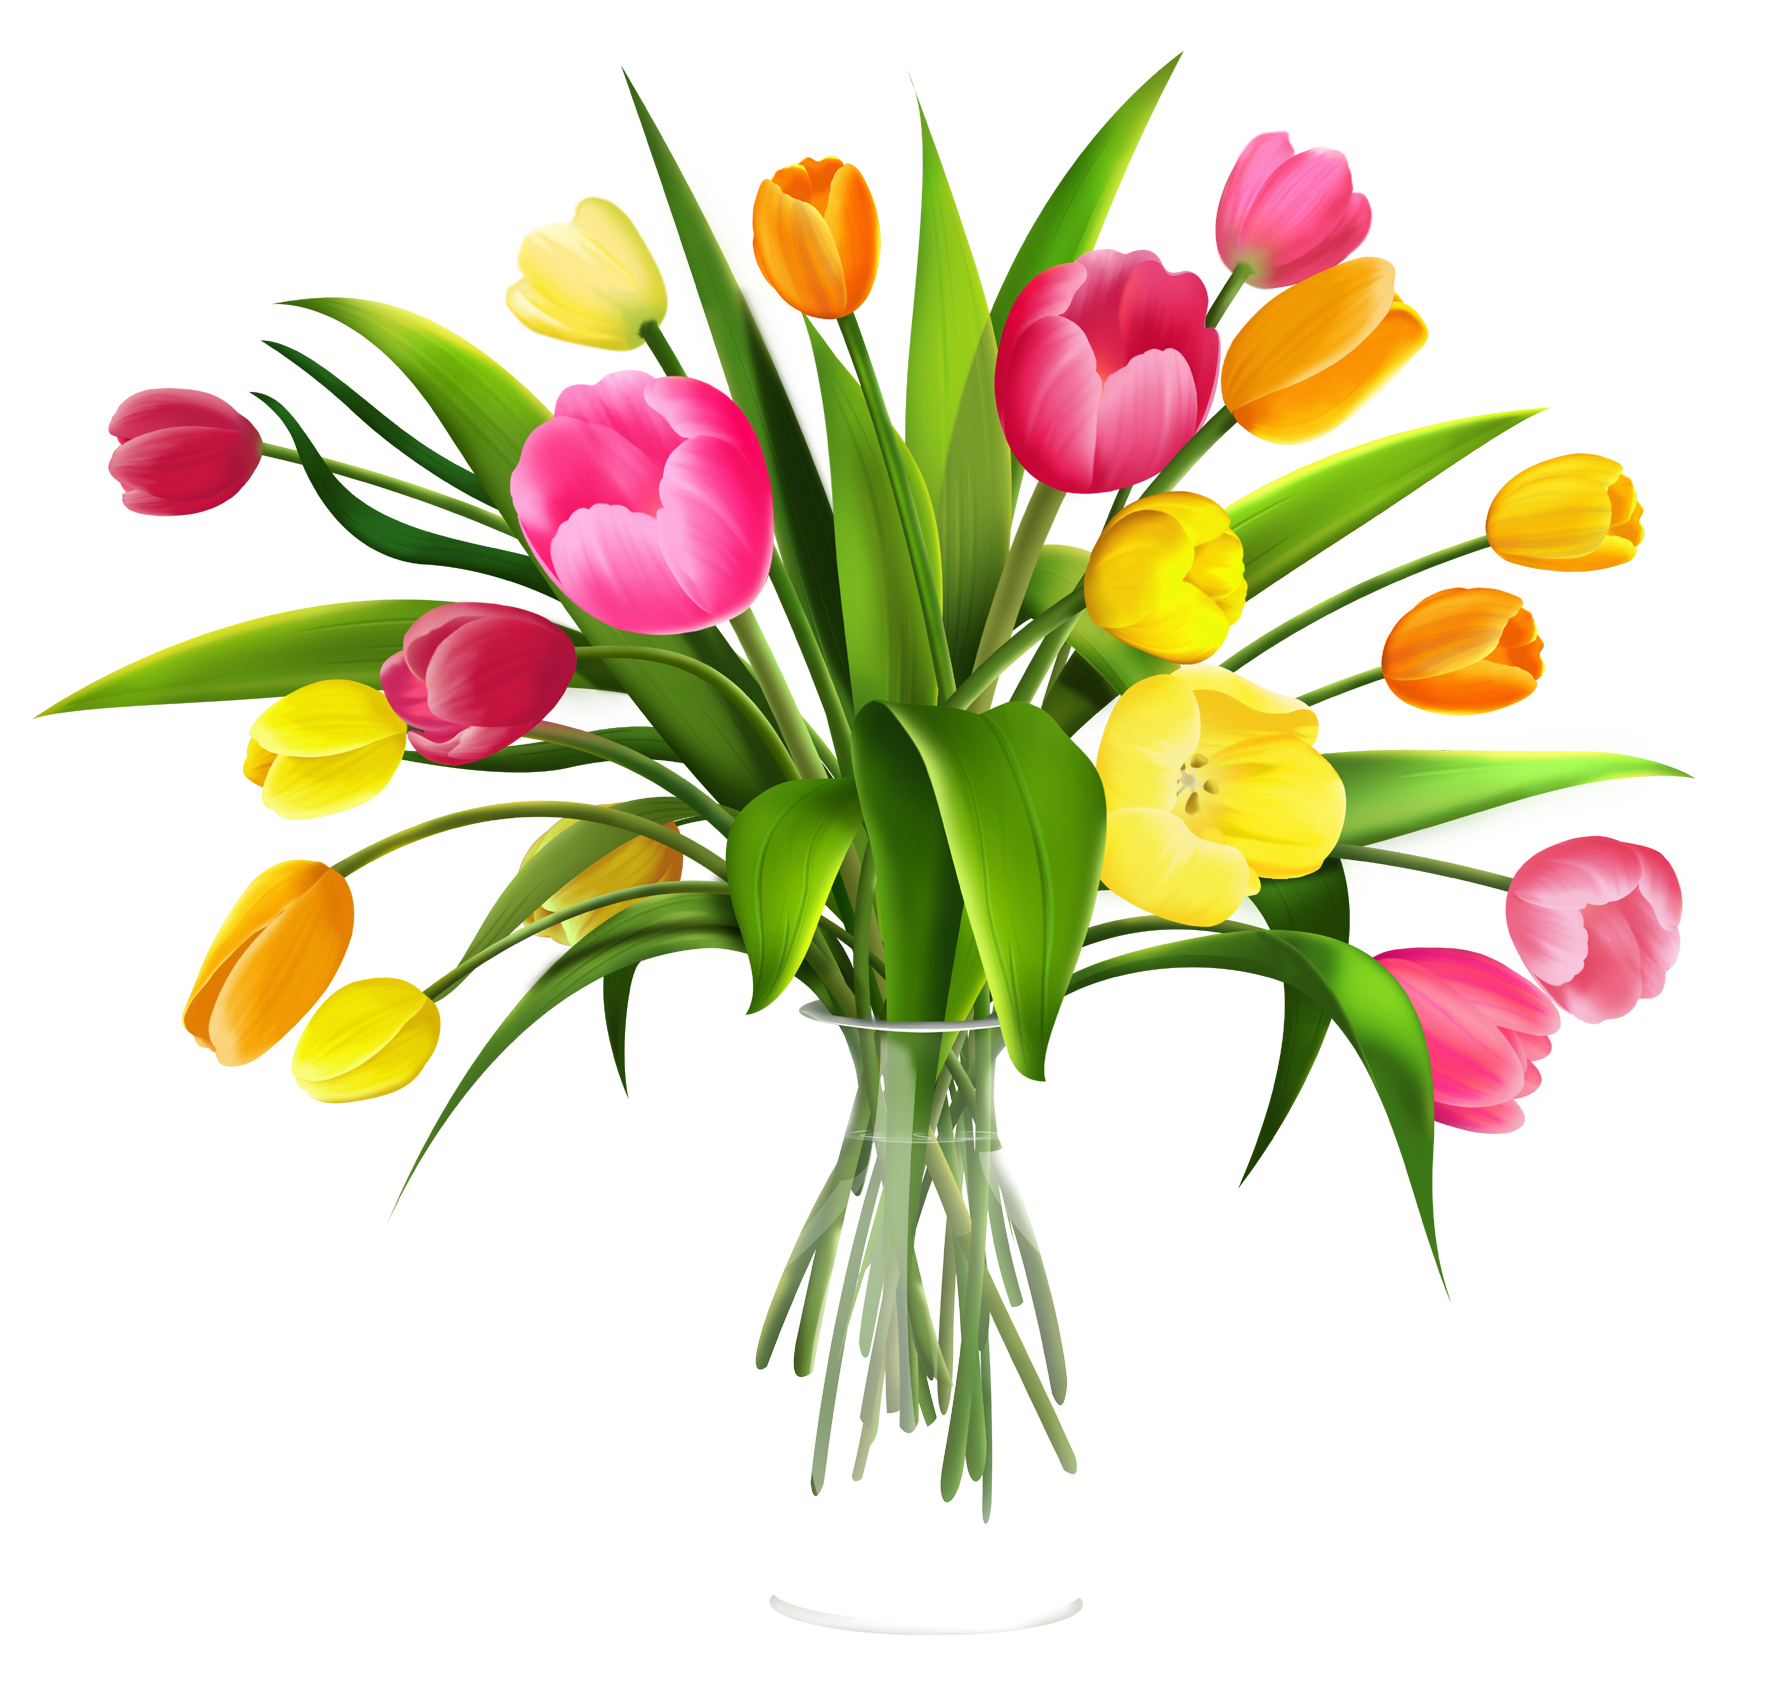 Flower cliparts free download banner free stock Free Clip Art Flowers in Vase | Use these free images for your ... banner free stock